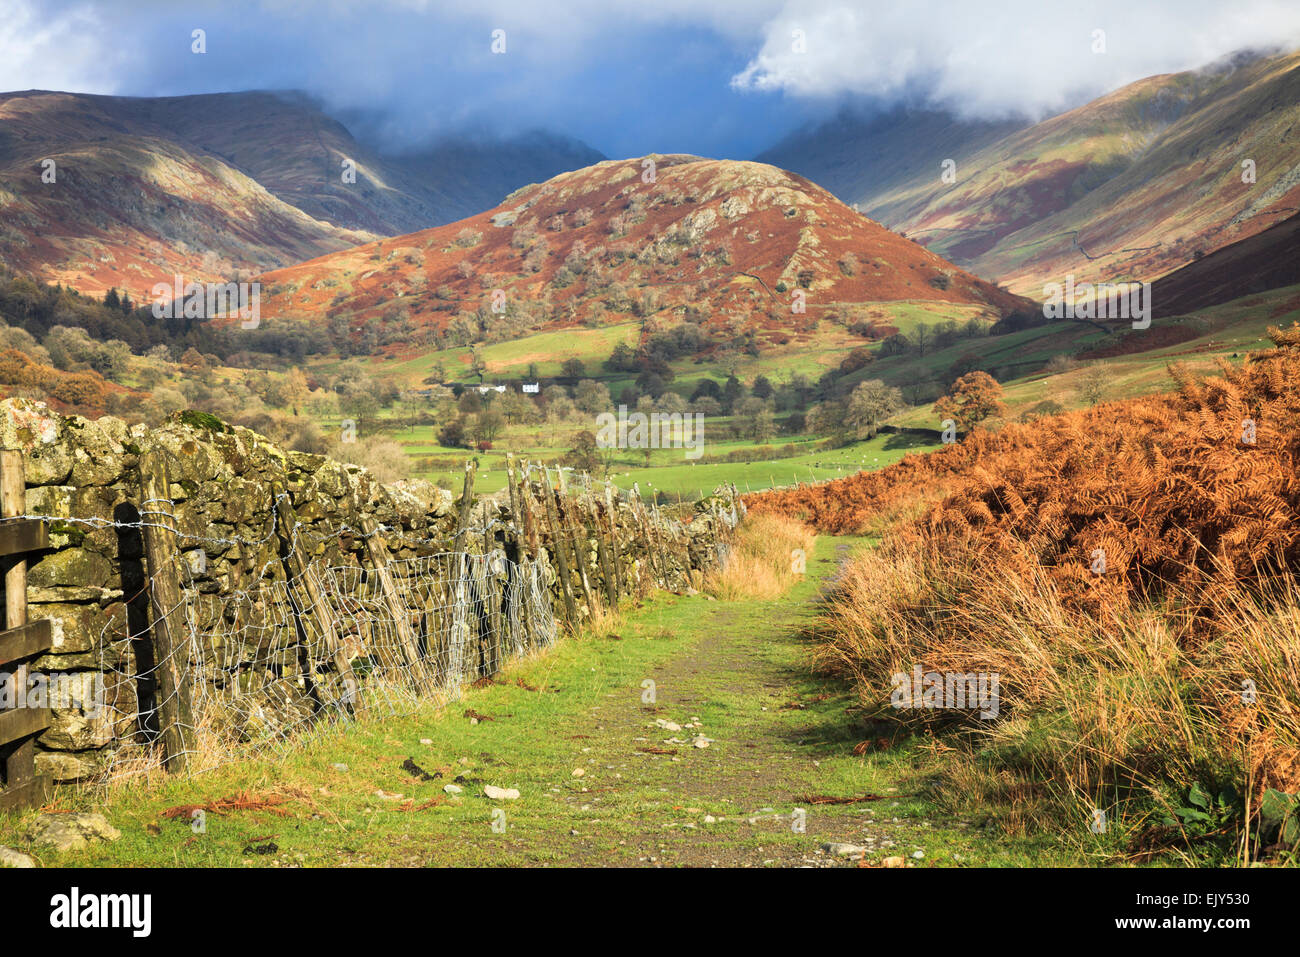 The Tongue in the Troutbeck Valley in the Lake District National Park, captured from a public footpath. - Stock Image